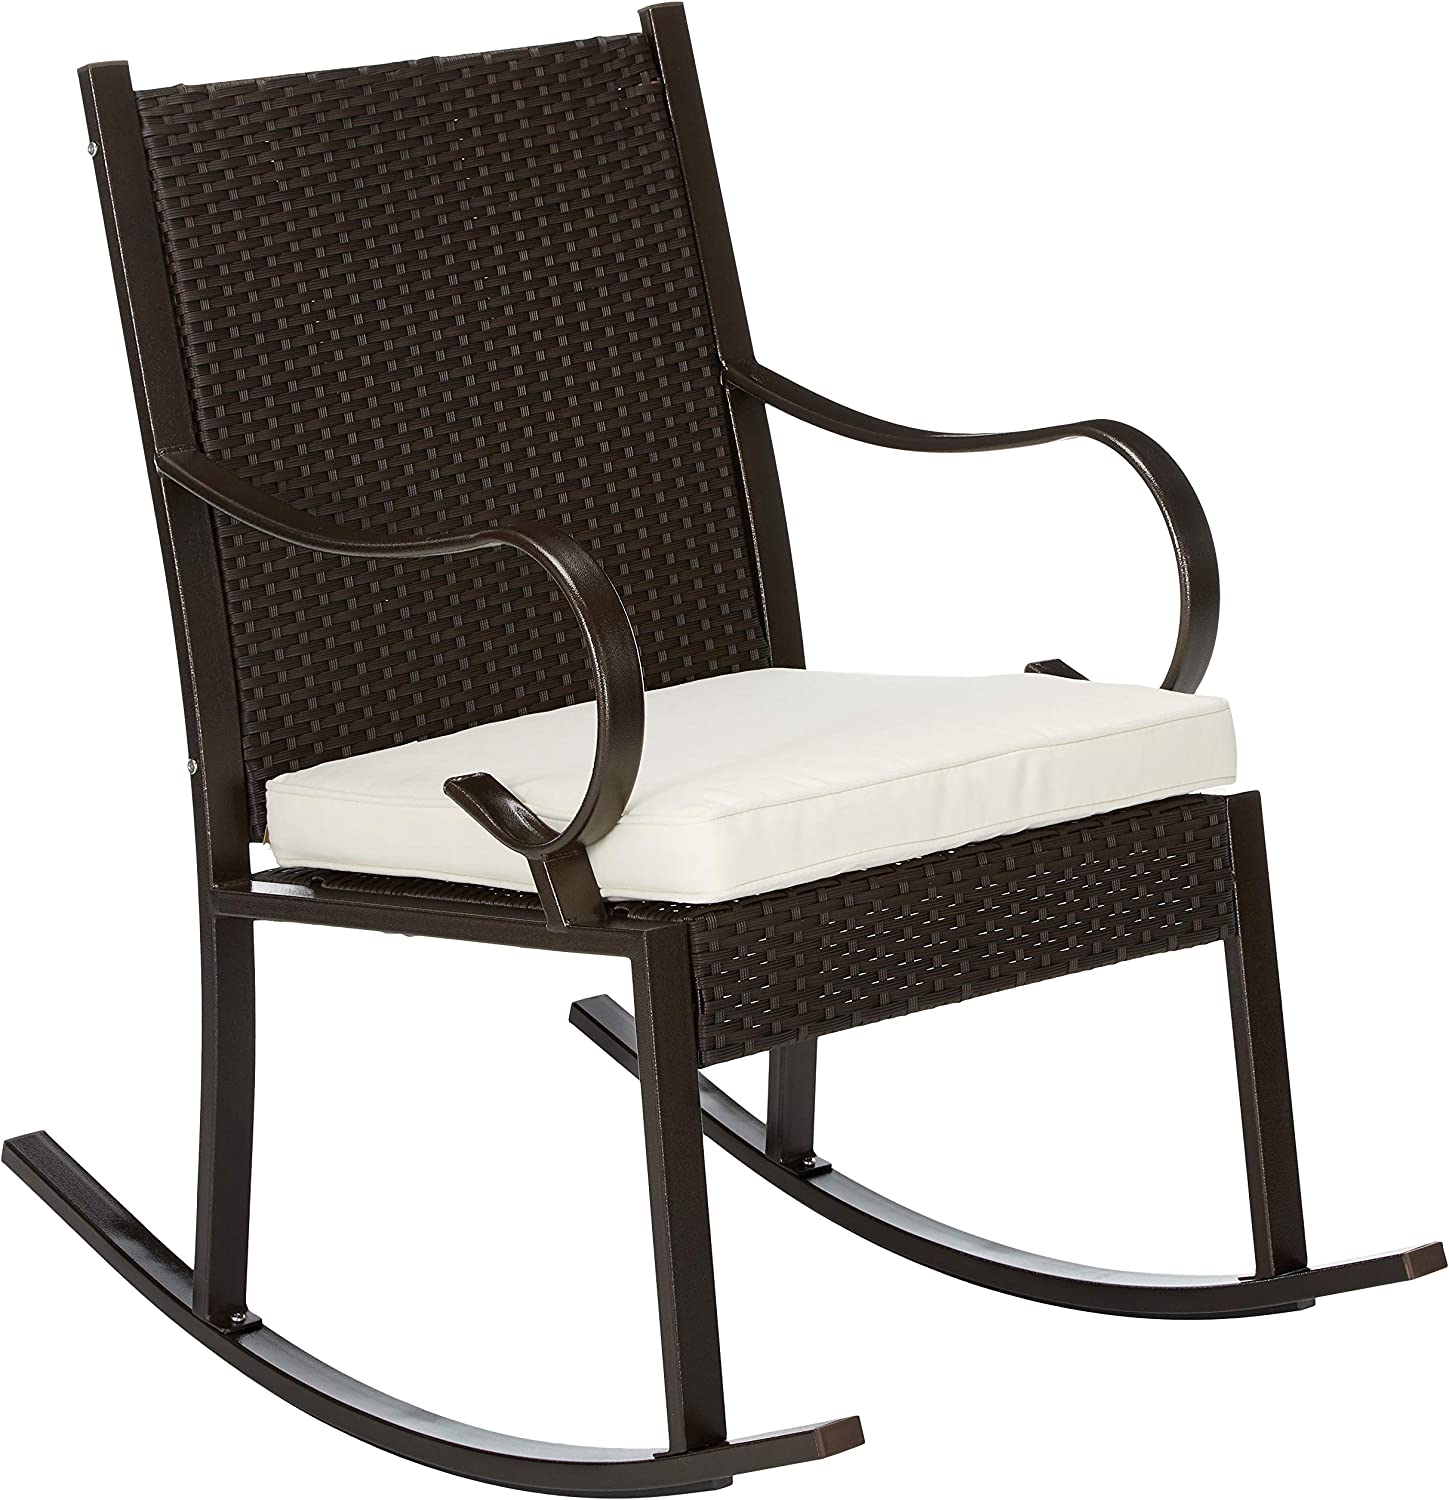 Christopher Knight Home Muriel Outdoor Wicker Rocking Chair